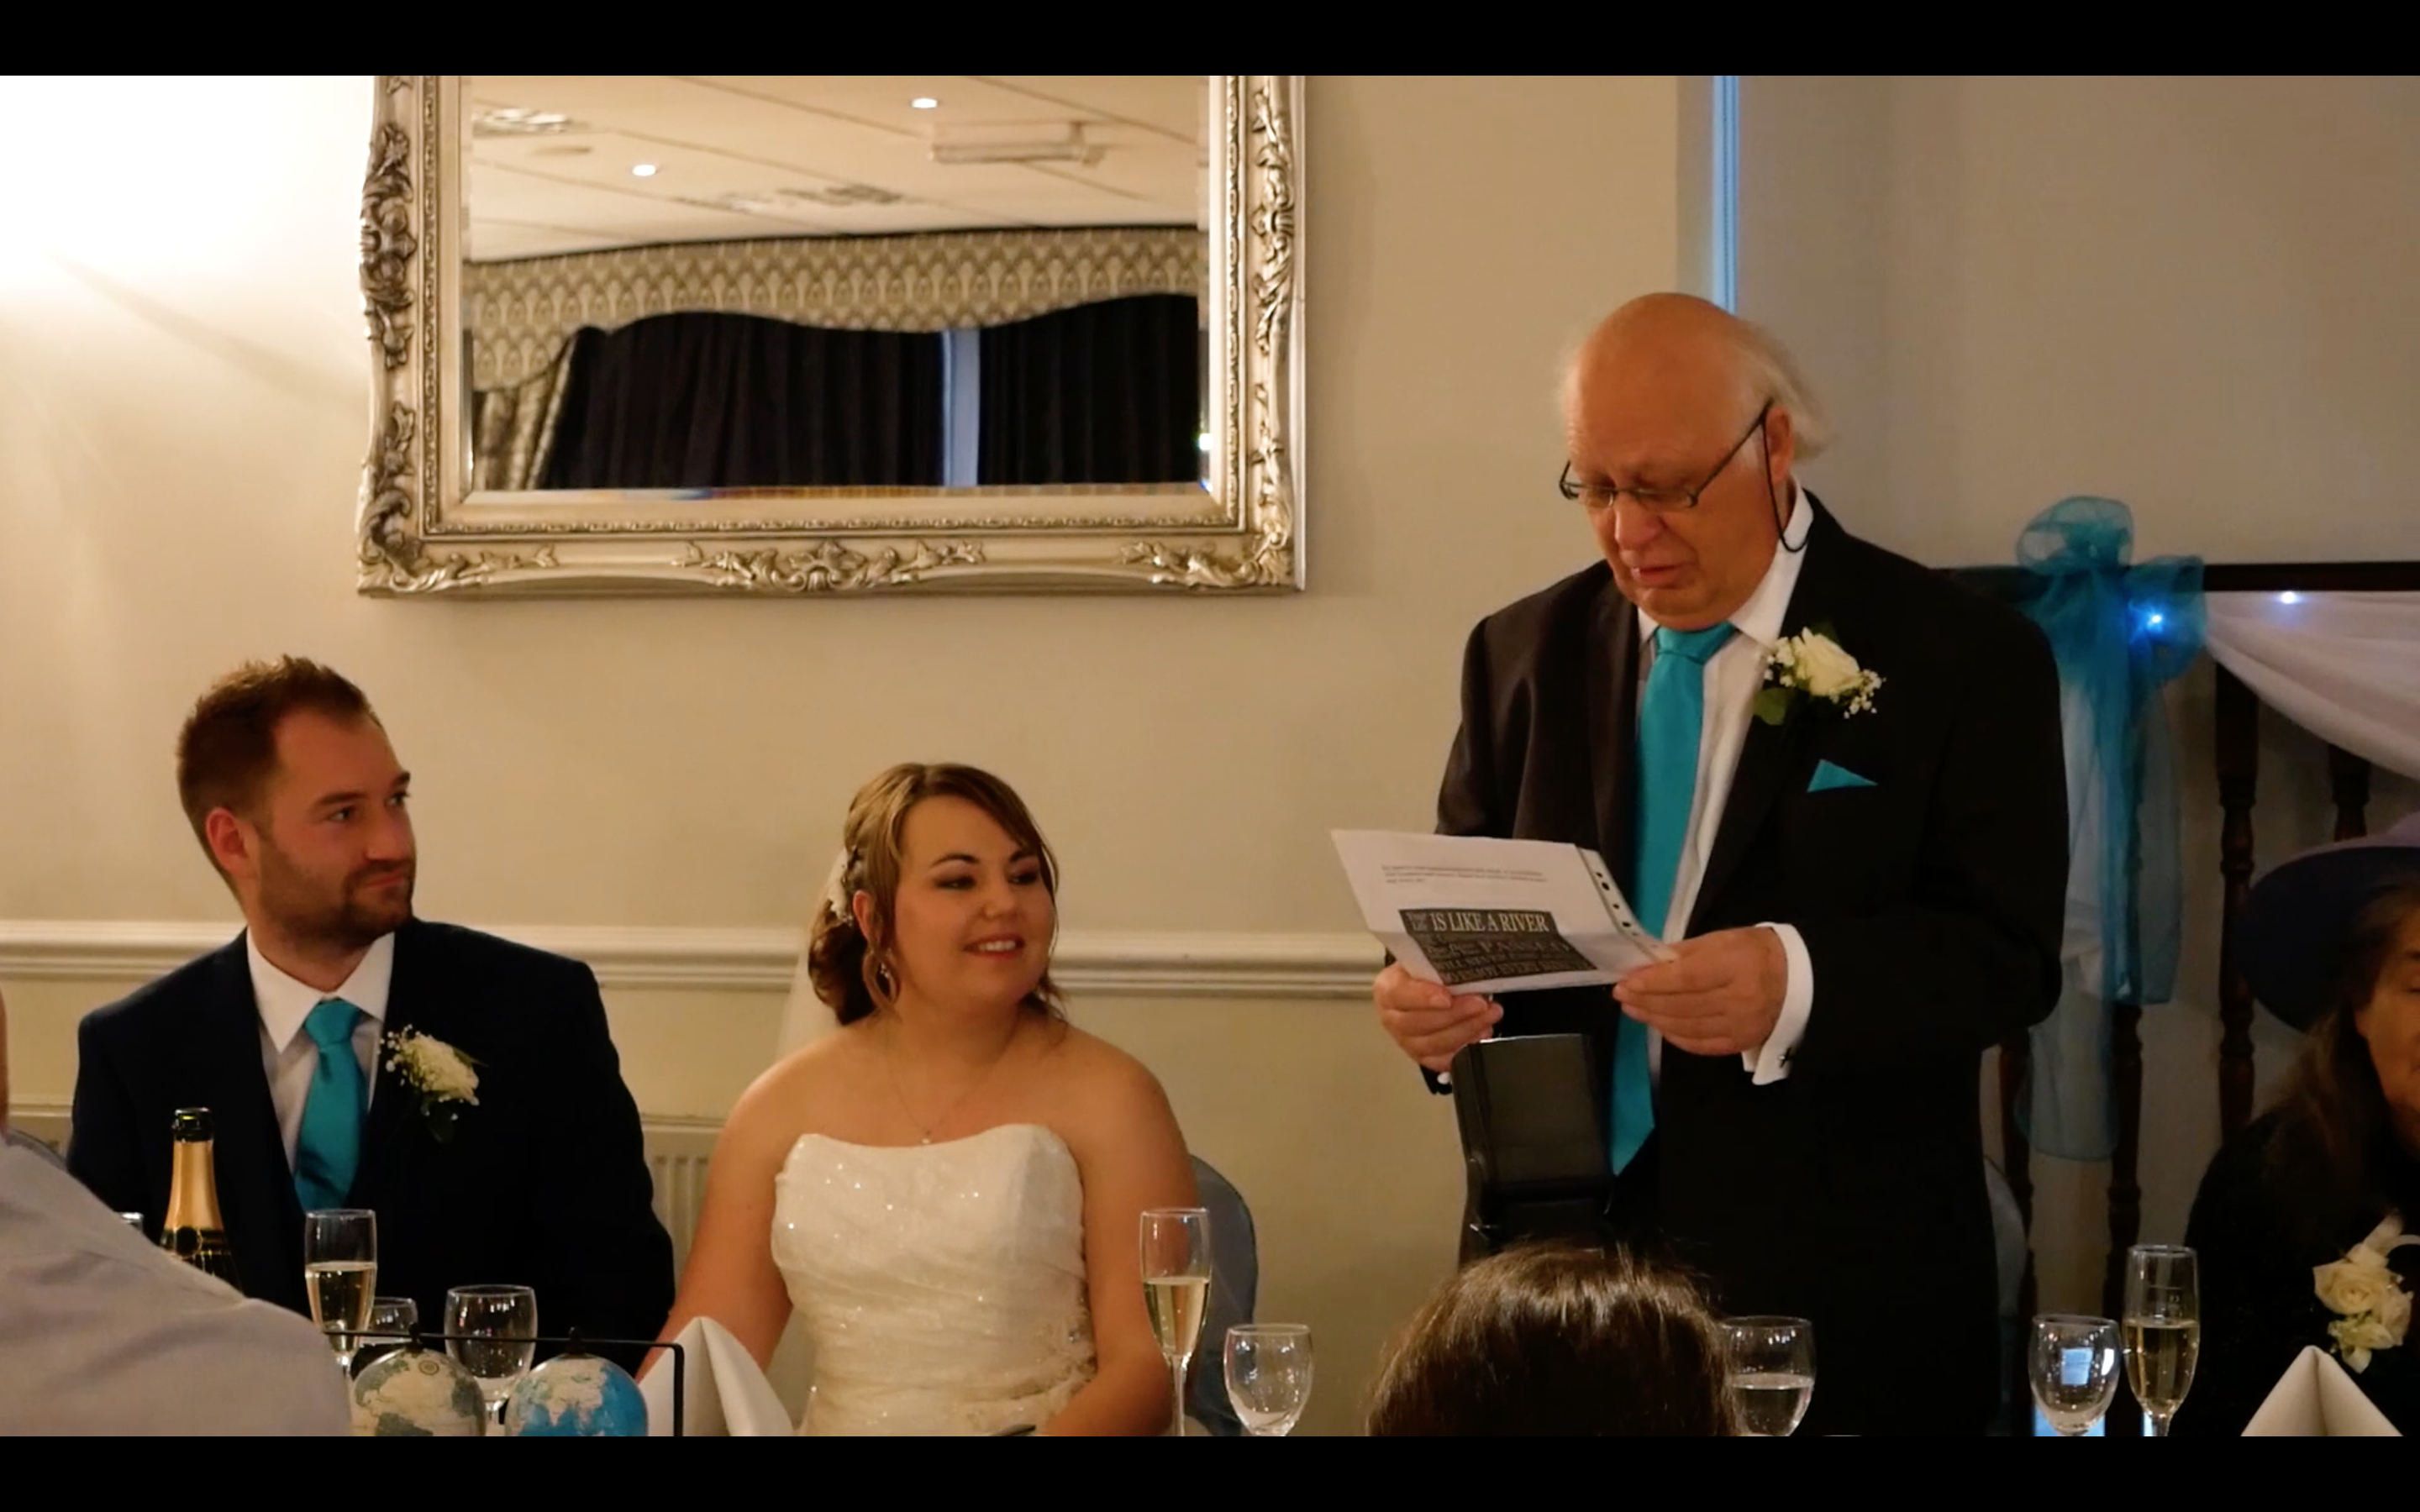 Leicestershire Wedding Videos Videography Blog Updates and fers